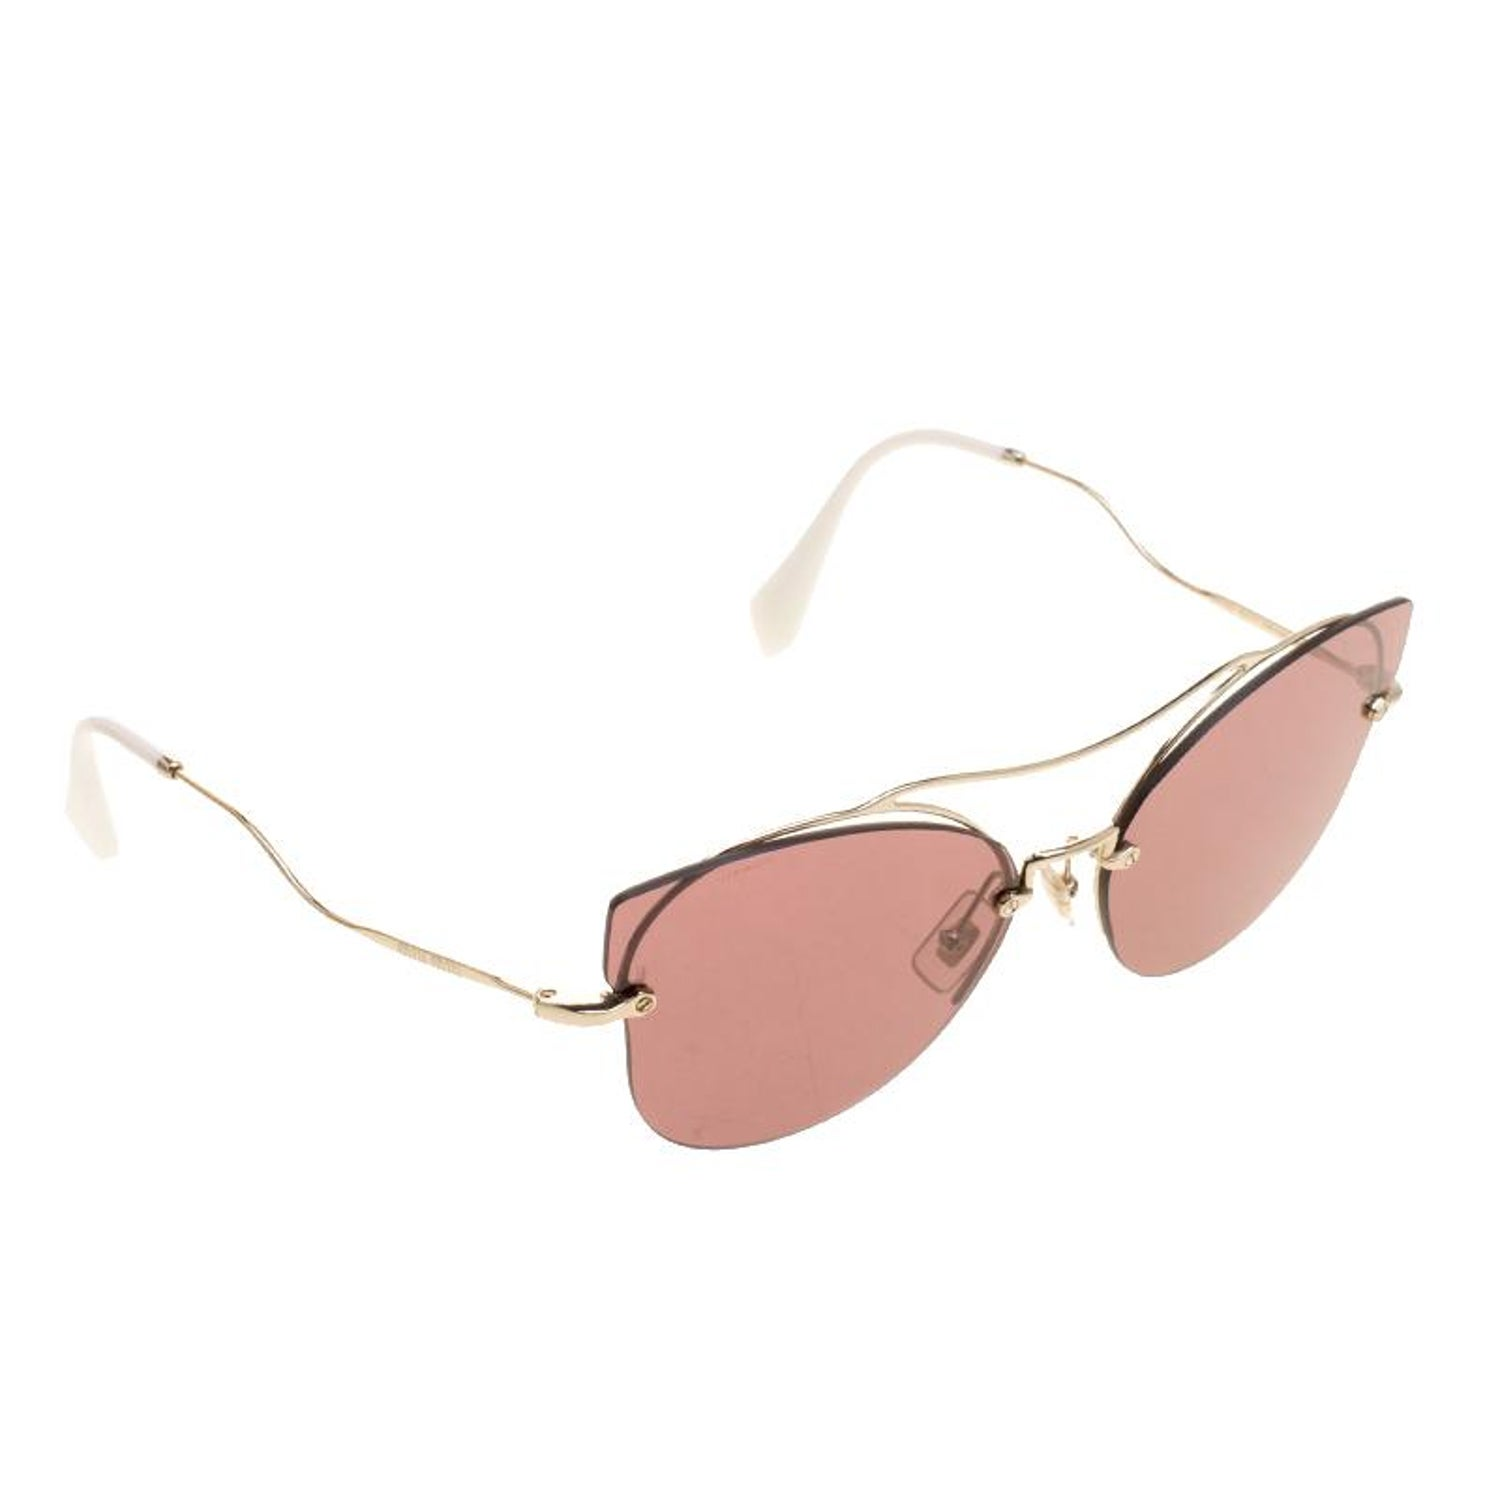 9f63cb8fd76 Miu Miu Pale Gold Violet SMU52S Aviator Sunglasses For Sale at 1stdibs